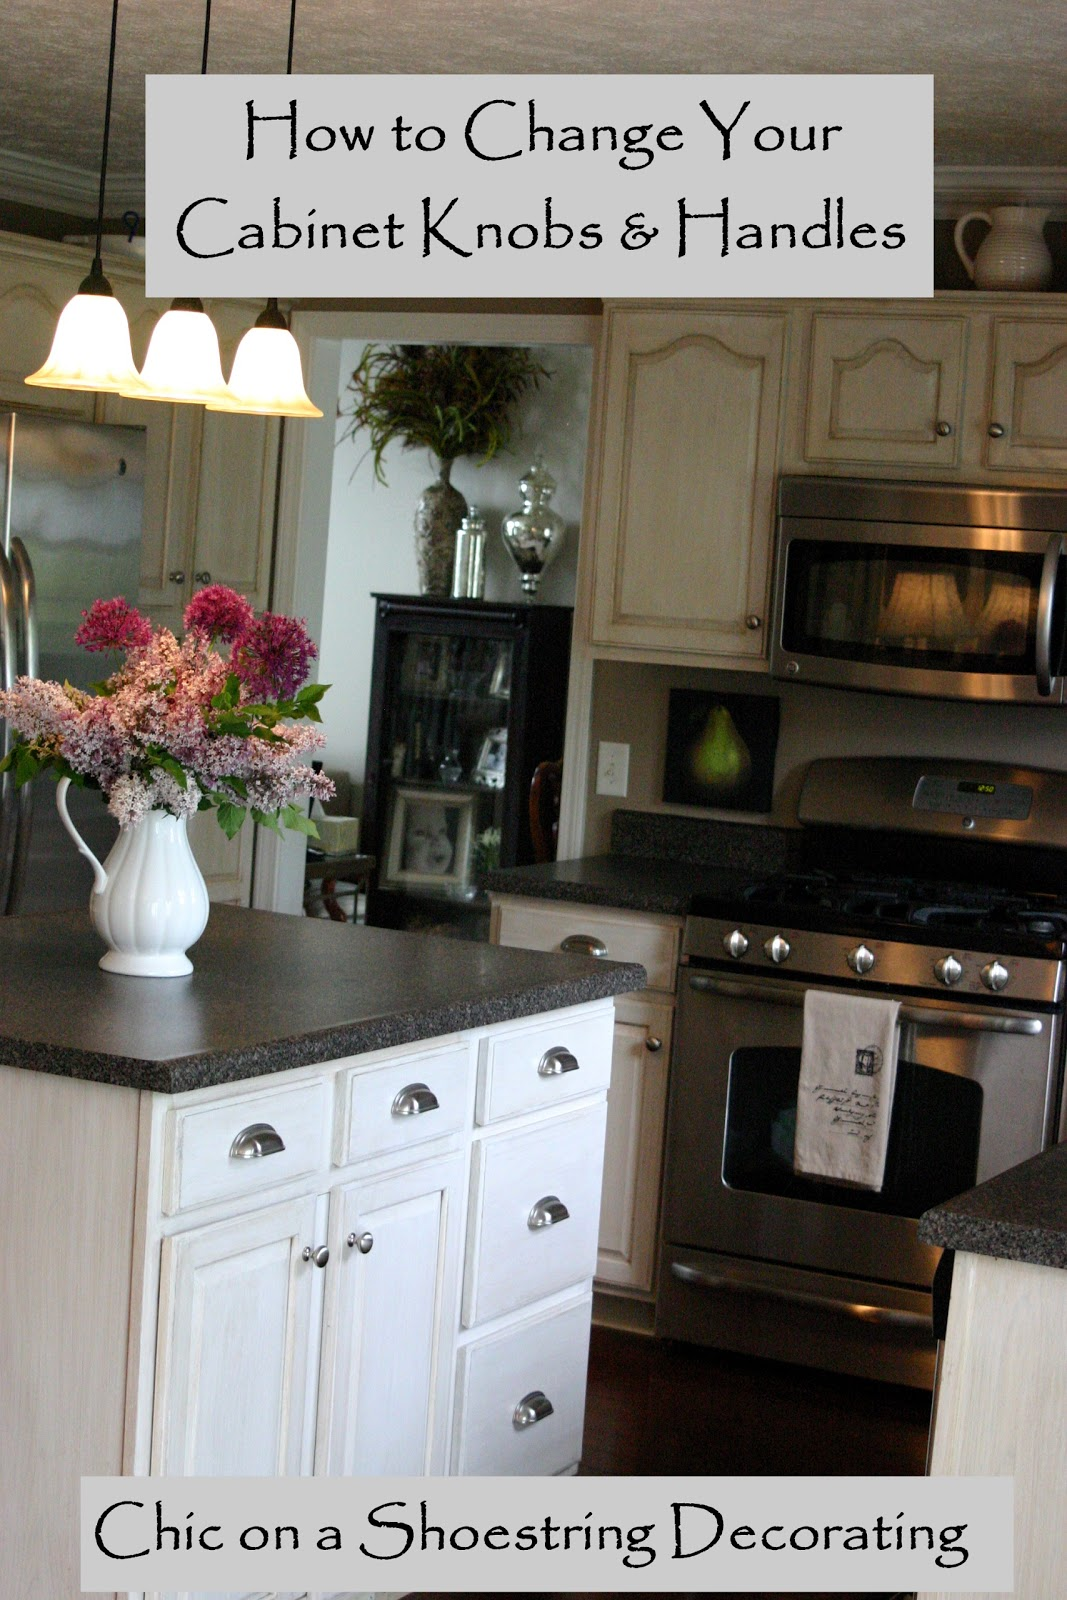 kitchen cabinets hardware. glazed kitchen cabinets Chic on a Shoestring Decorating  How to Change Your Kitchen